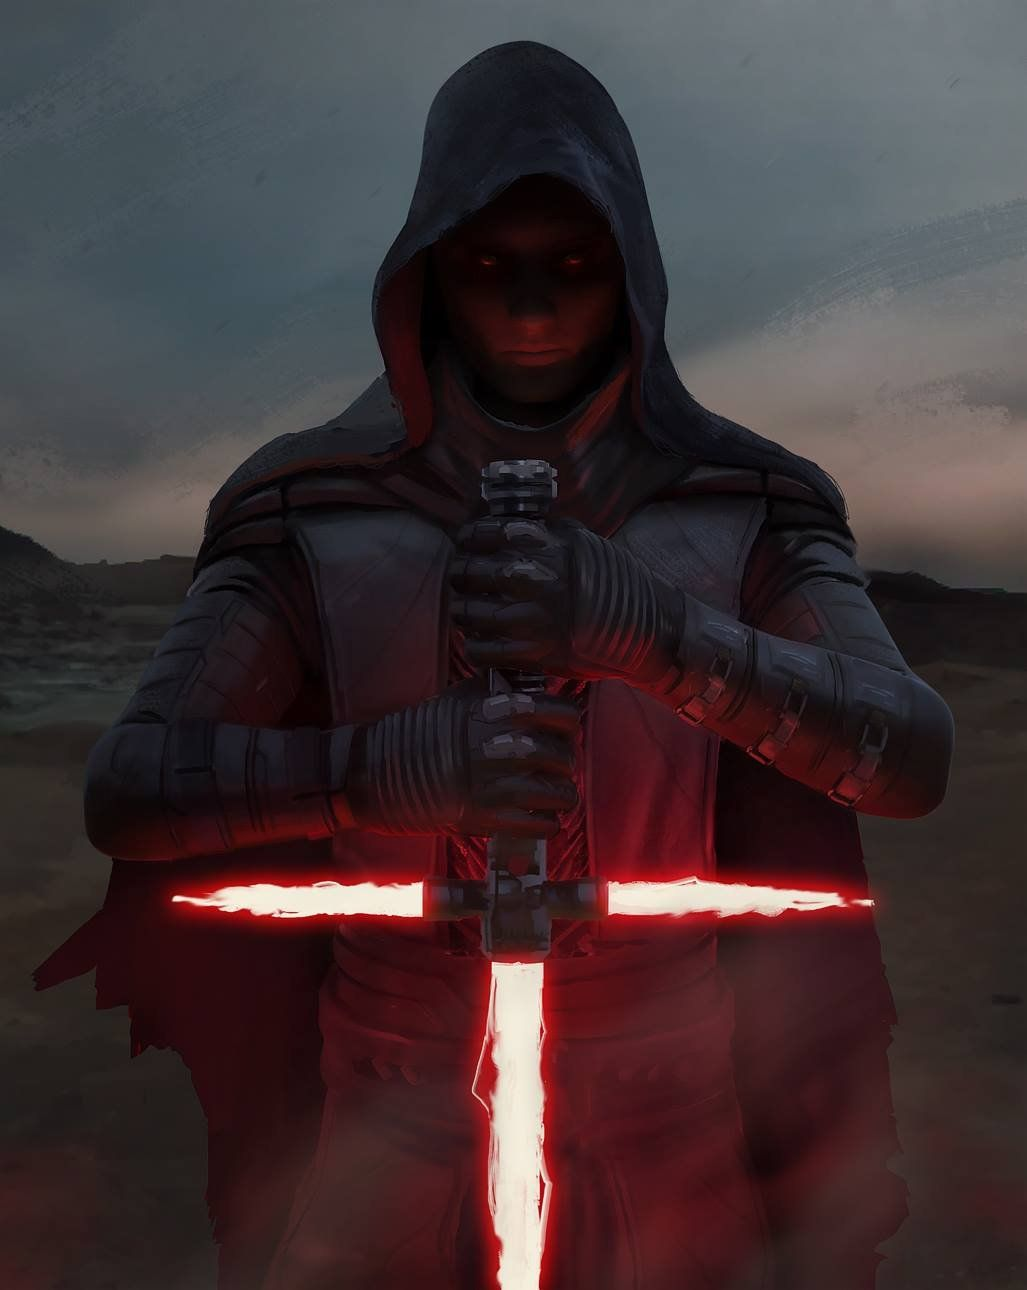 sith-lord-fan-art-for-star-wars-the-force-awakens (1027×1290)